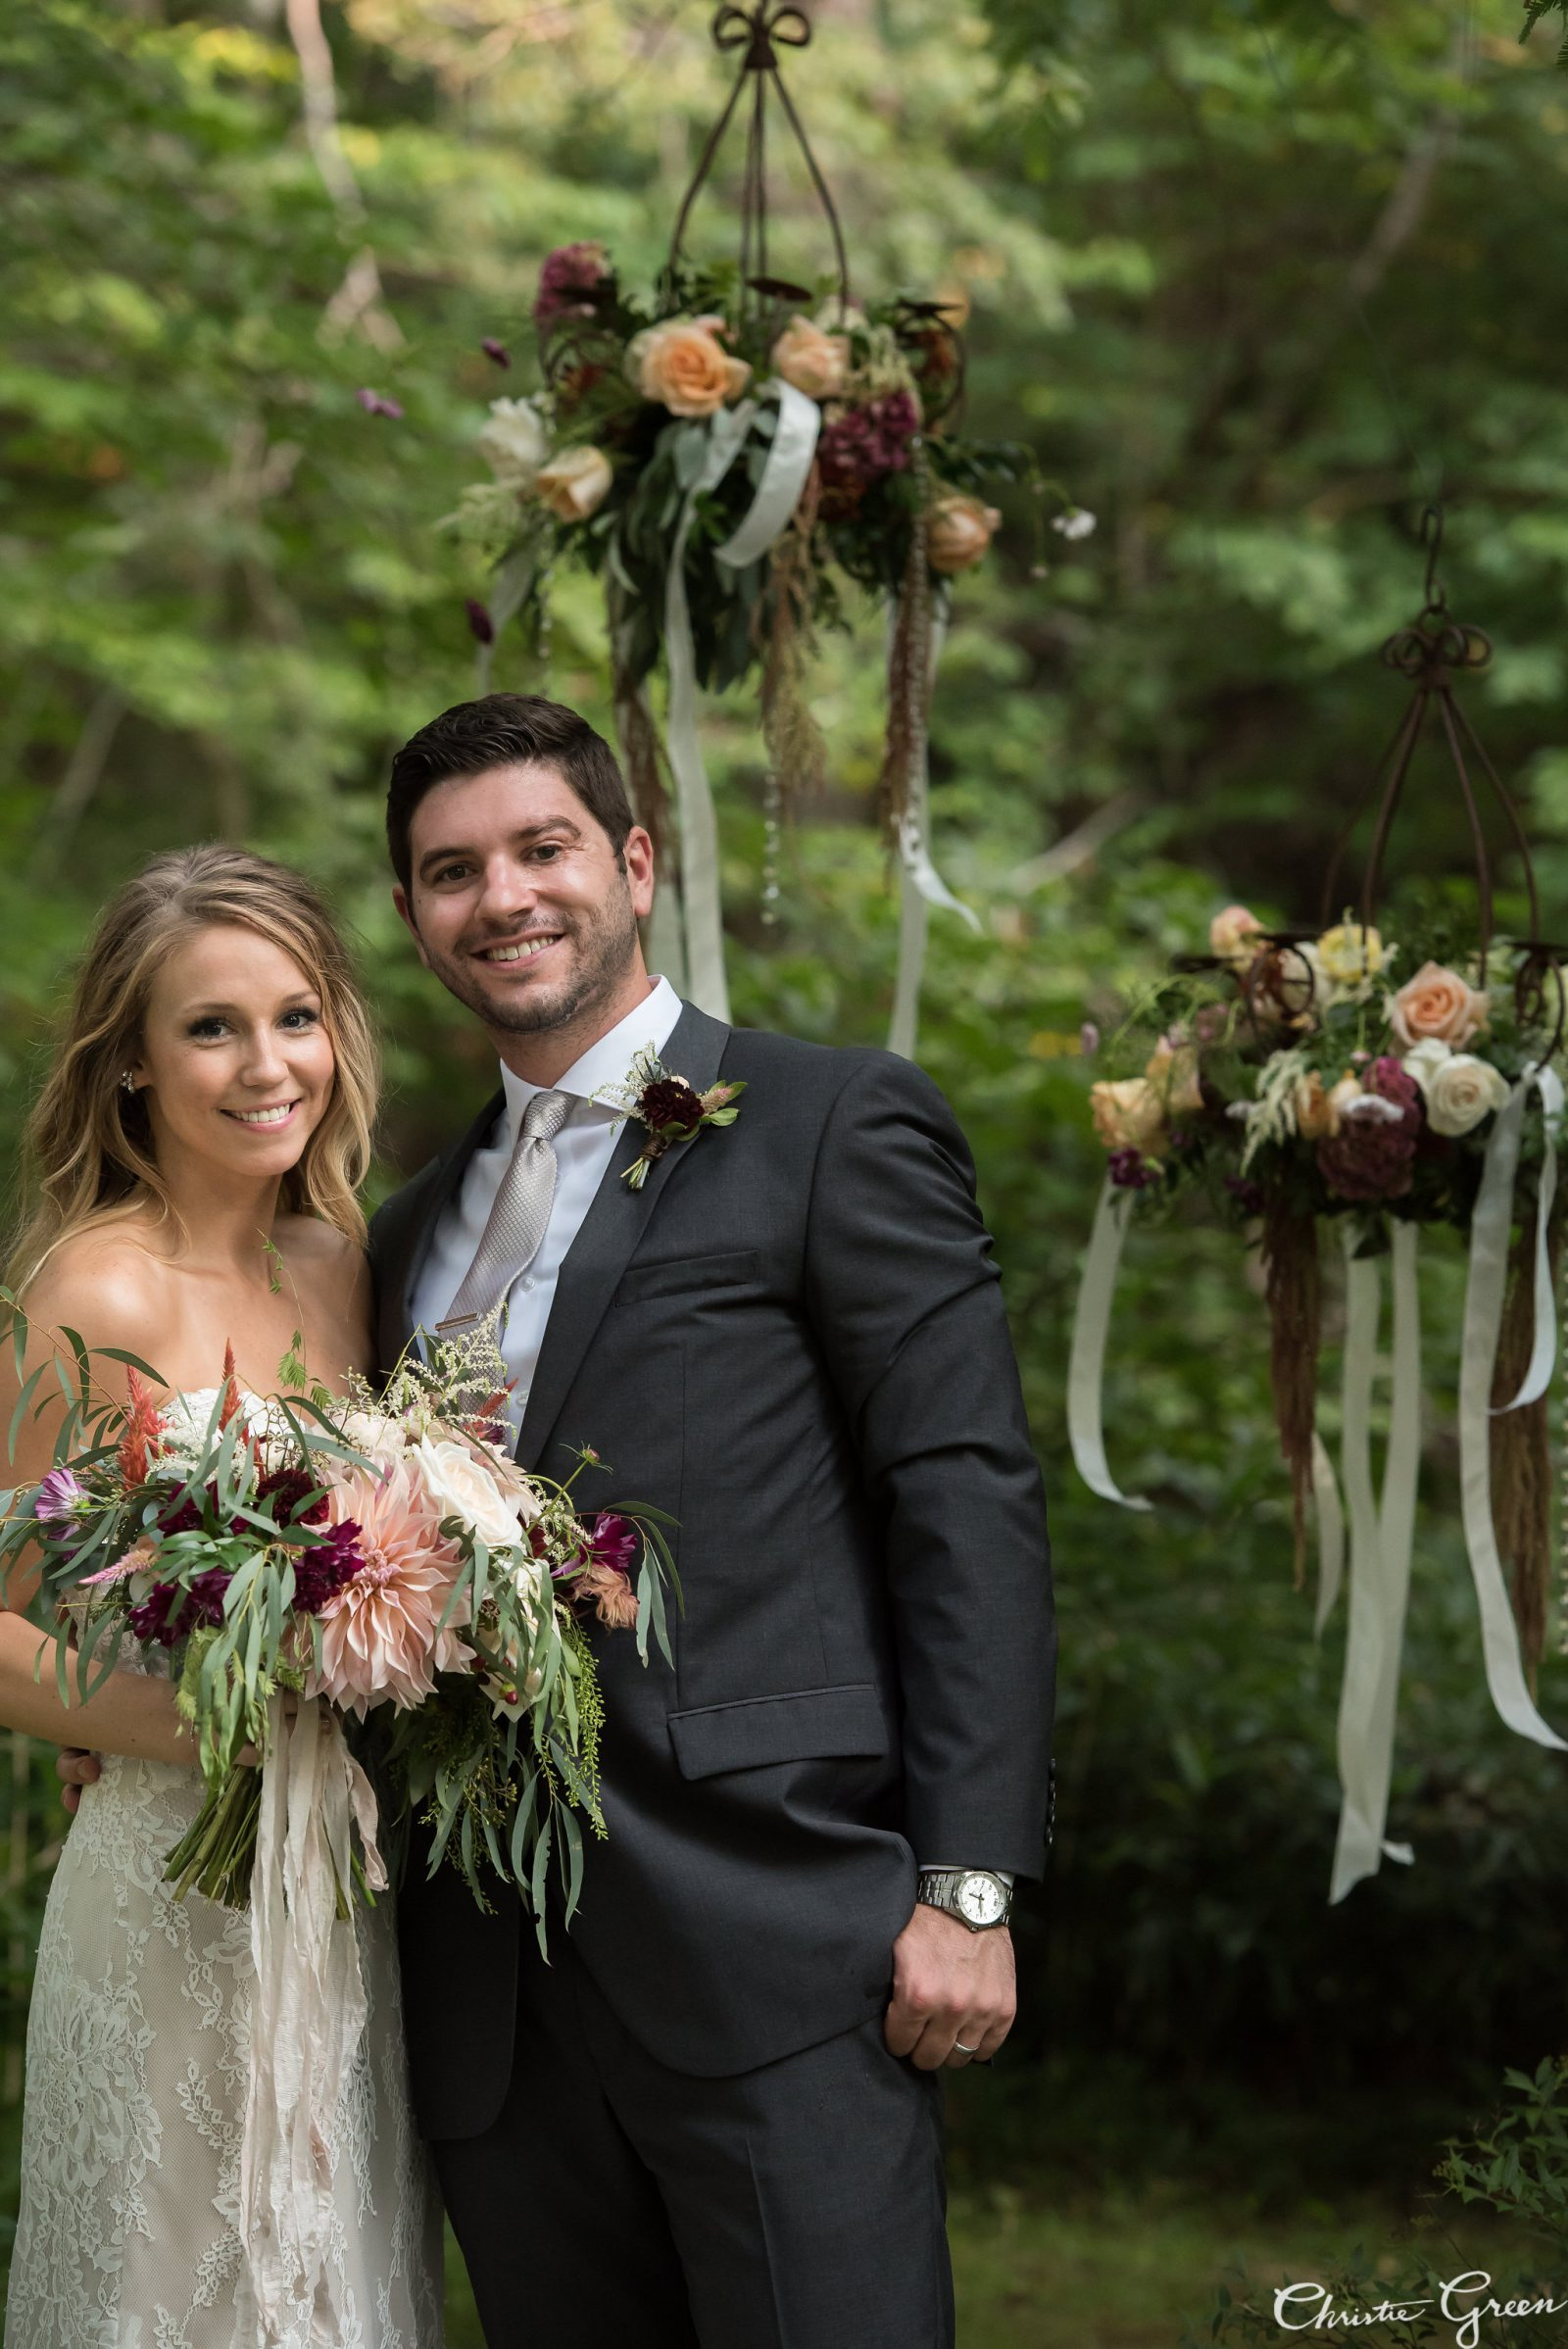 Bride with garden bouquet in Justin Alexander and groom in front of romantic hanging florals. Flowers by Fresh Designs Florist. Photo by Christie Green Photography